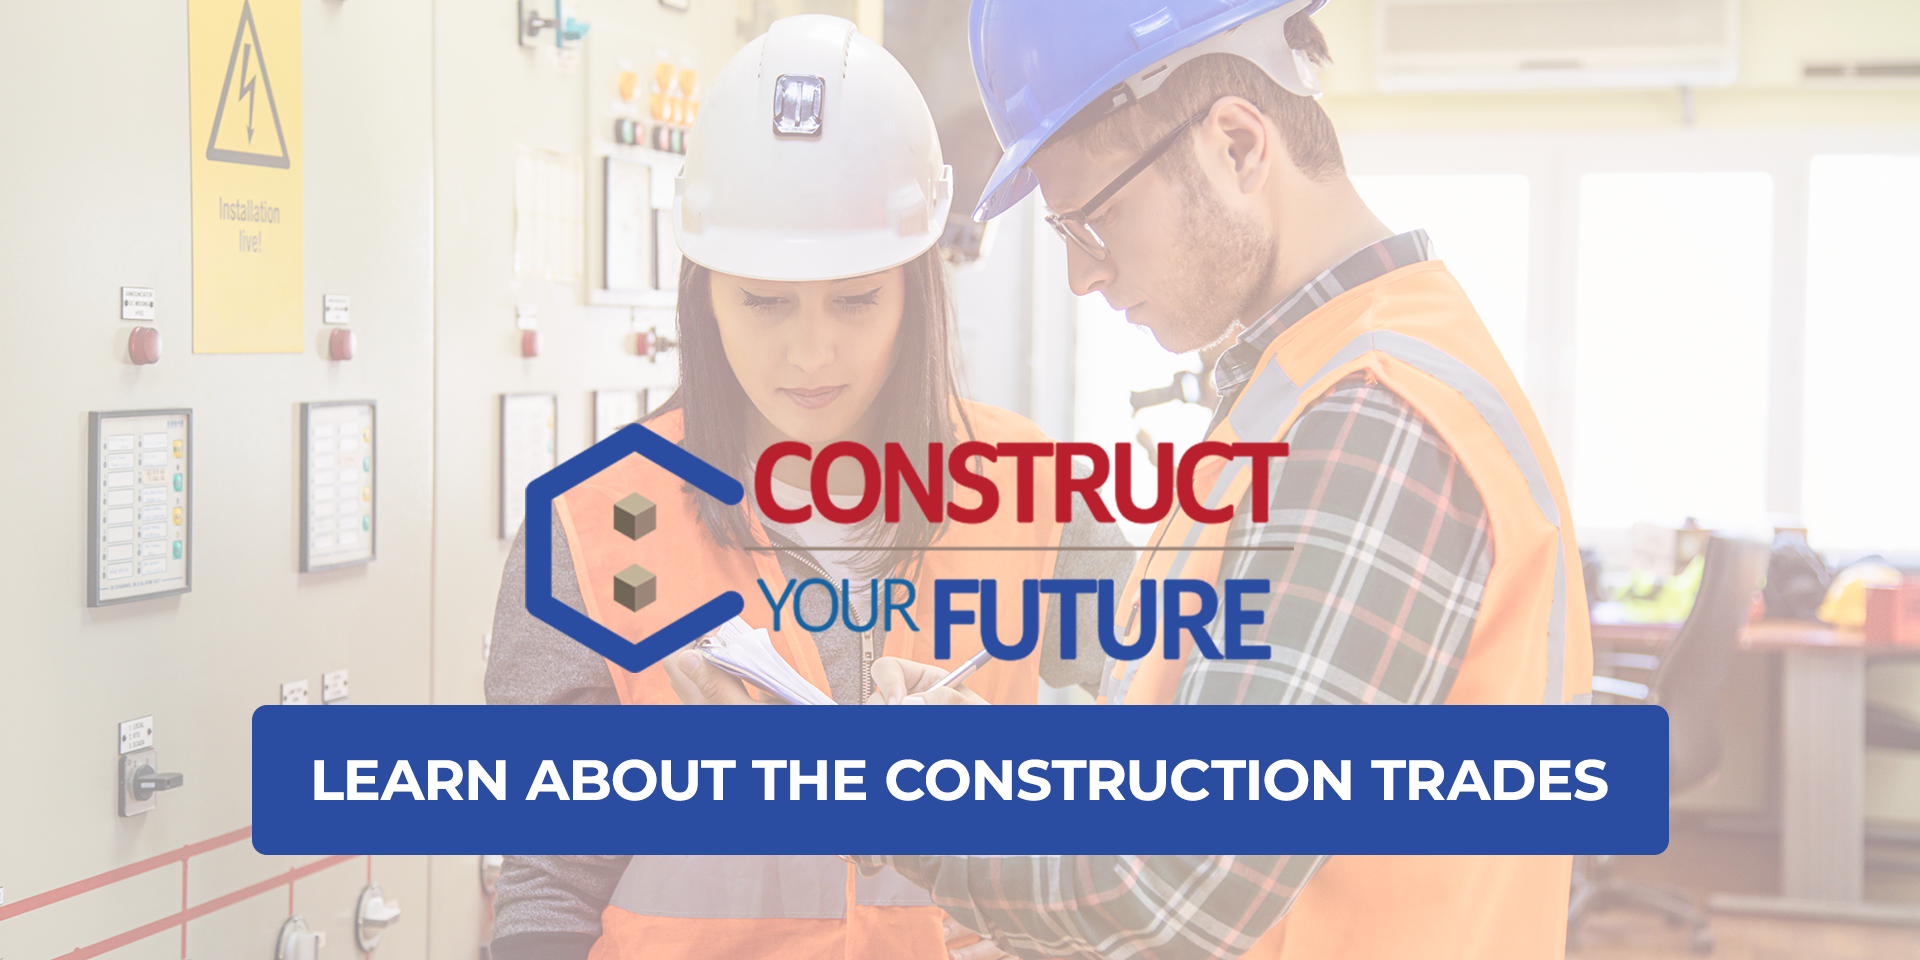 Construct Your Future - Registered Apprenticeship Programs - Learn about the Construction Trades